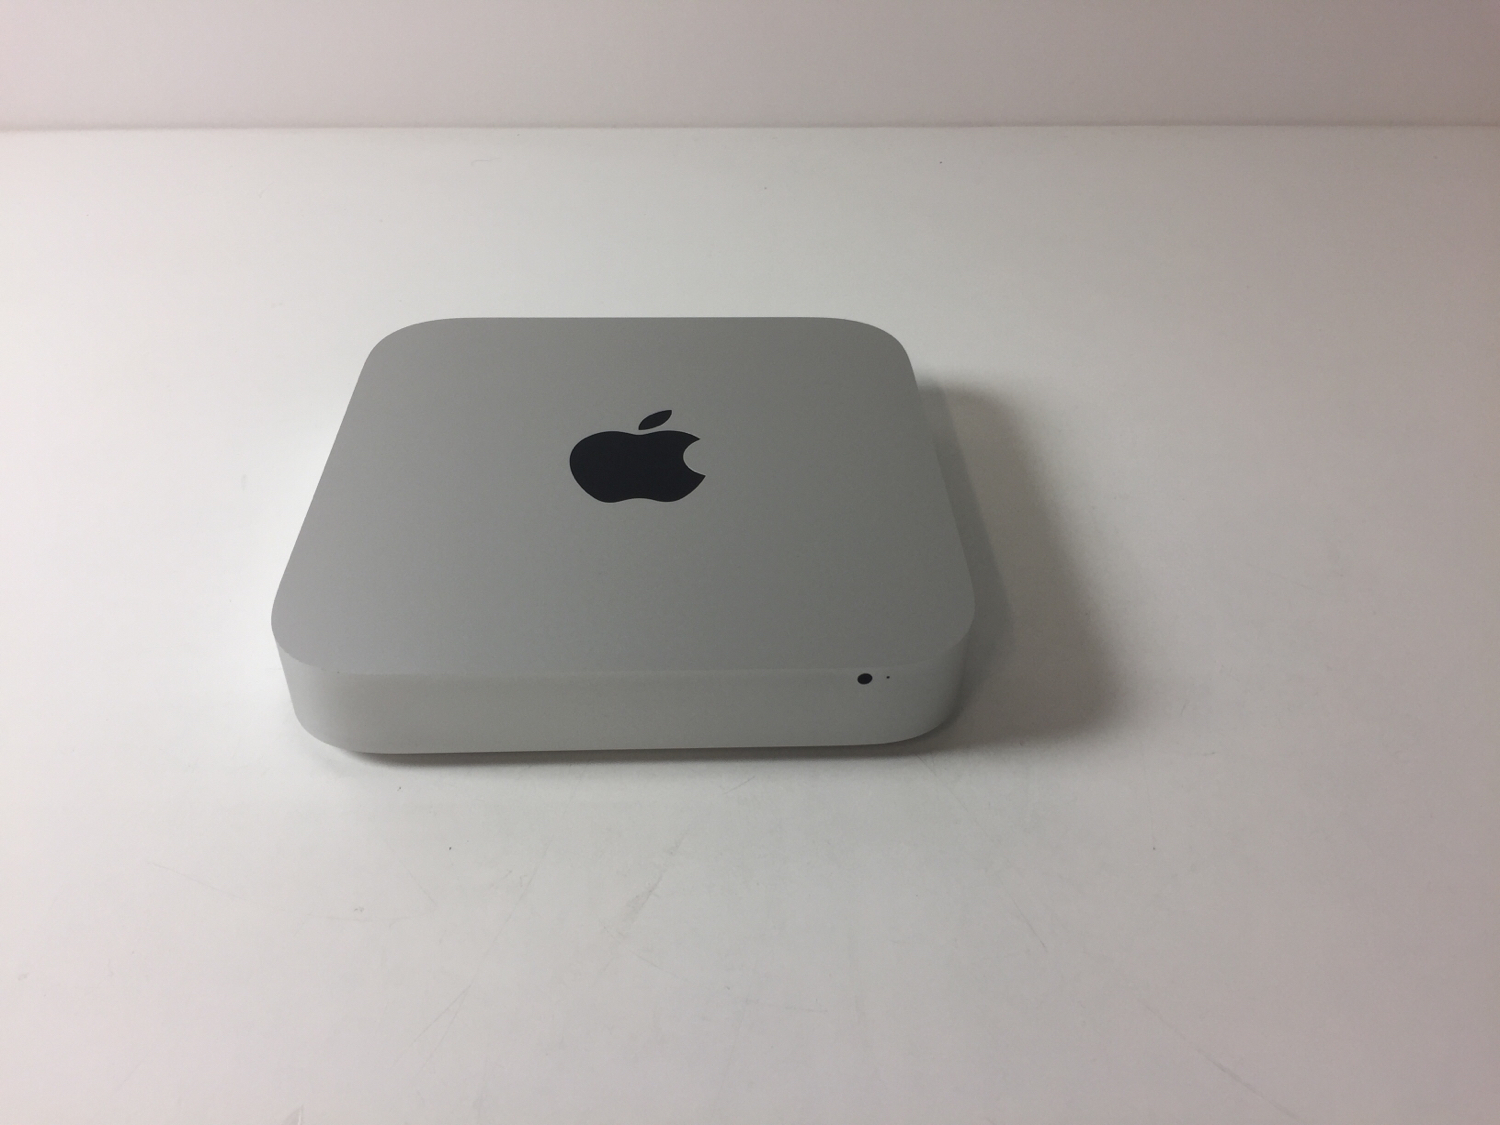 Mac Mini Late 2012 (Intel Core i5 2.5 GHz 8 GB RAM 500 GB HDD), Dual Core Intel Core i5 2.5GHz, 8GB DDR3 1333MHz, 500GB HDD 5400rpm, Bild 1